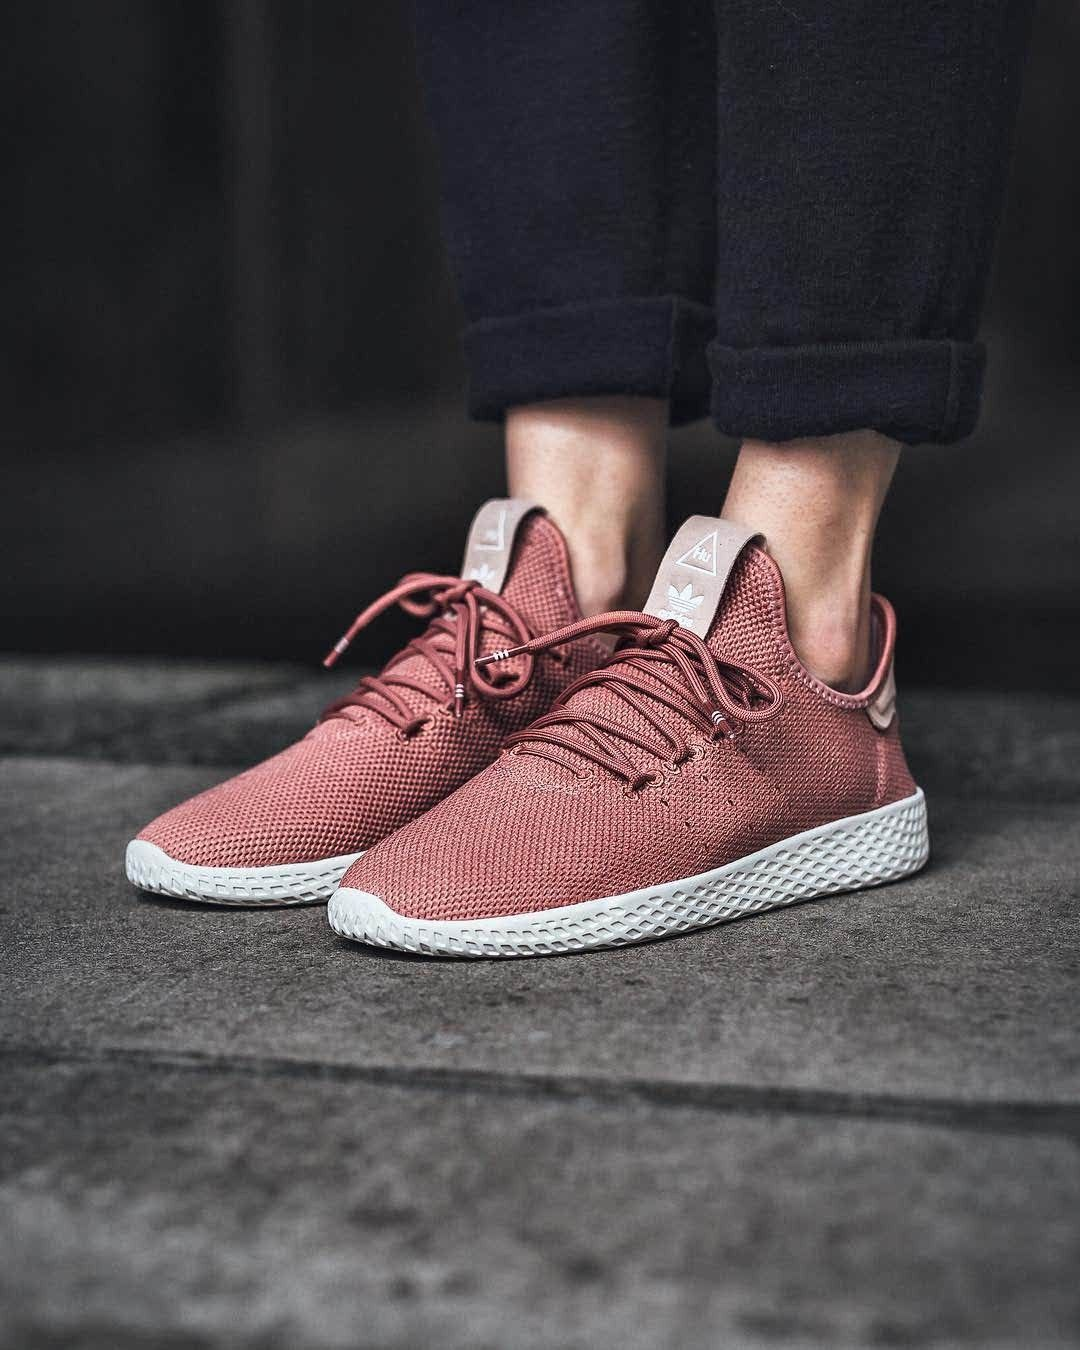 Adidas Women S Originals Pharrell Williams Tennis Hu Casual Shoes 110 Pay Tribute To An Icon In The Women S Adidas Originals Pharre Mode Fur Frauen Mode Frau